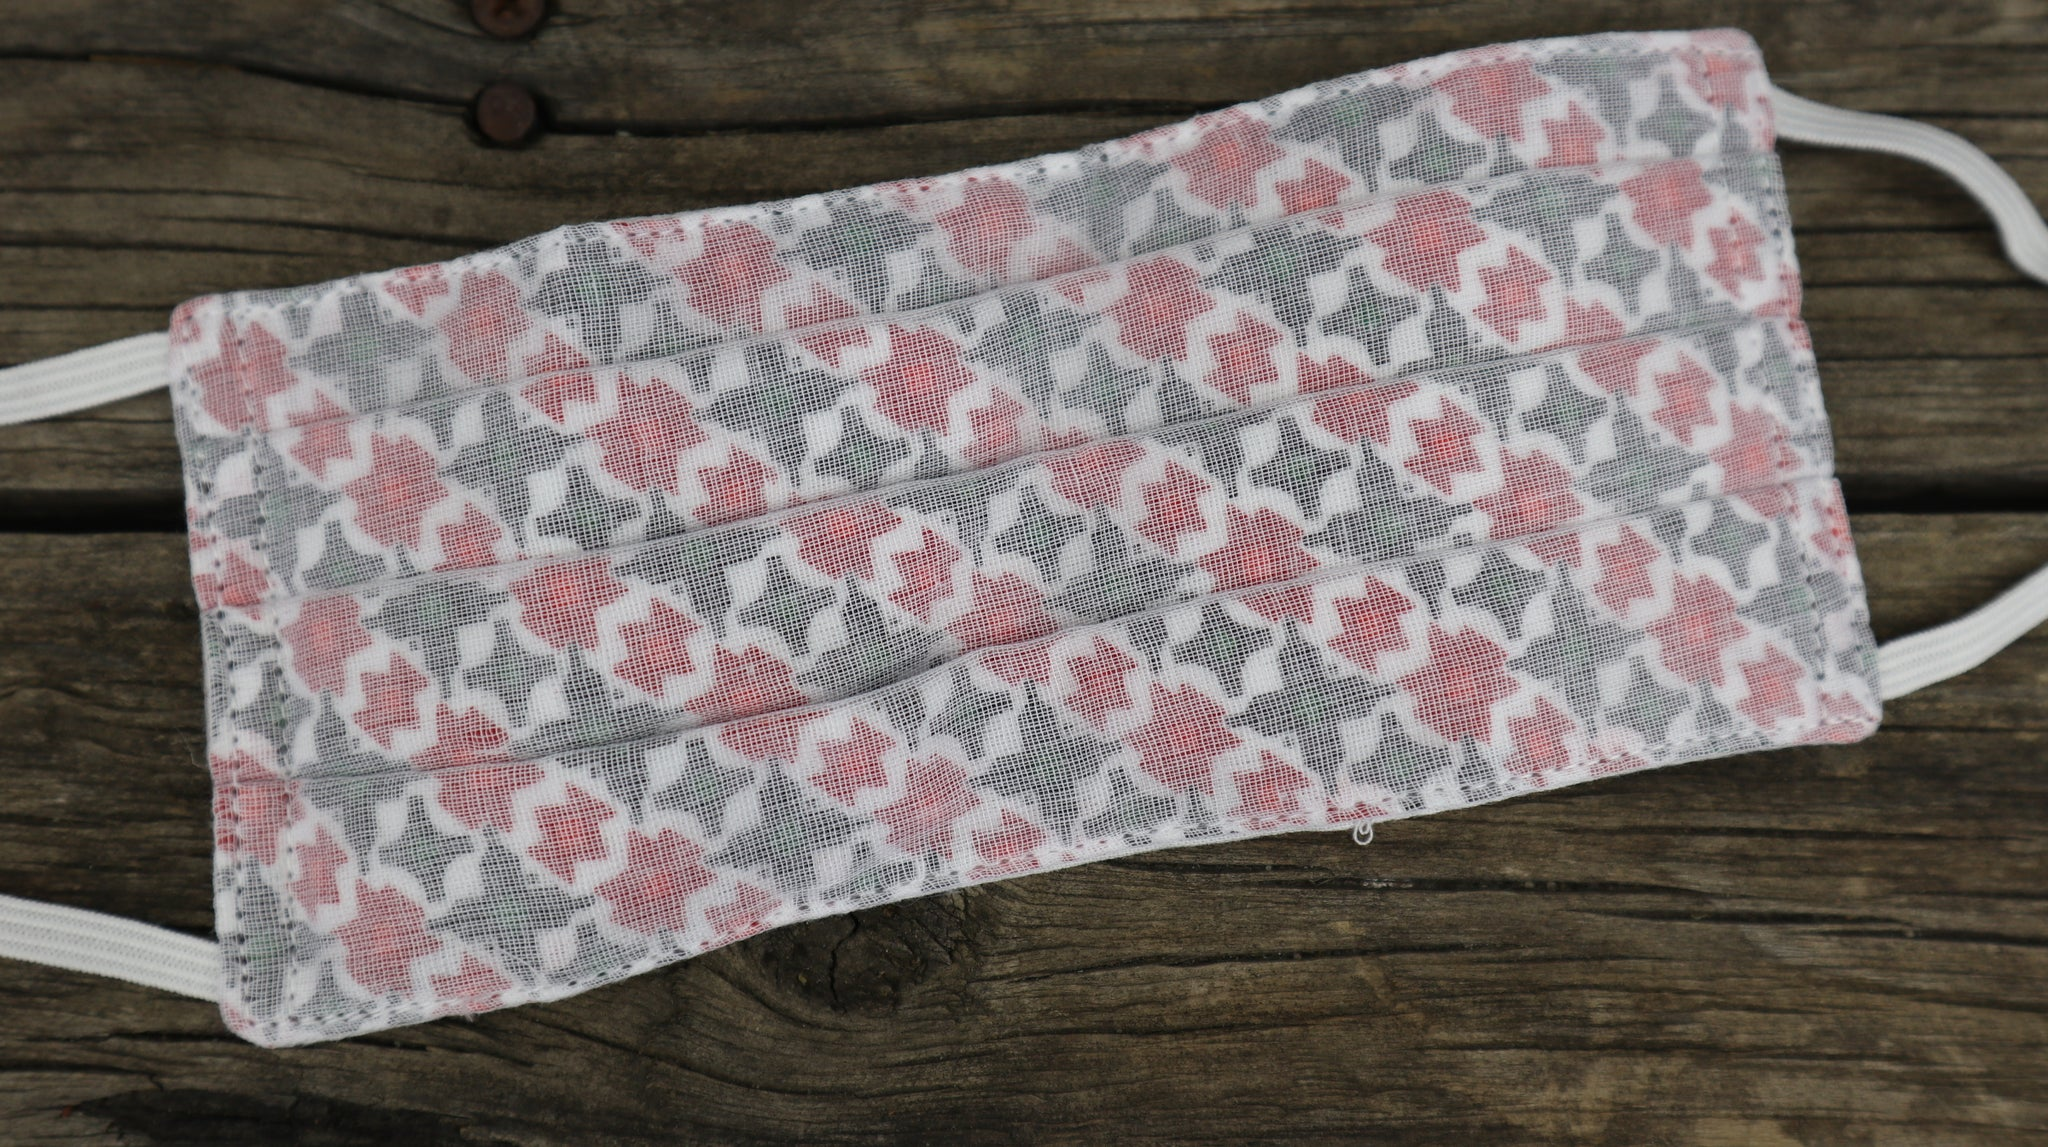 Fair Trade Ethical 3 Layer Cotton Face Masks Nepalese Pattern